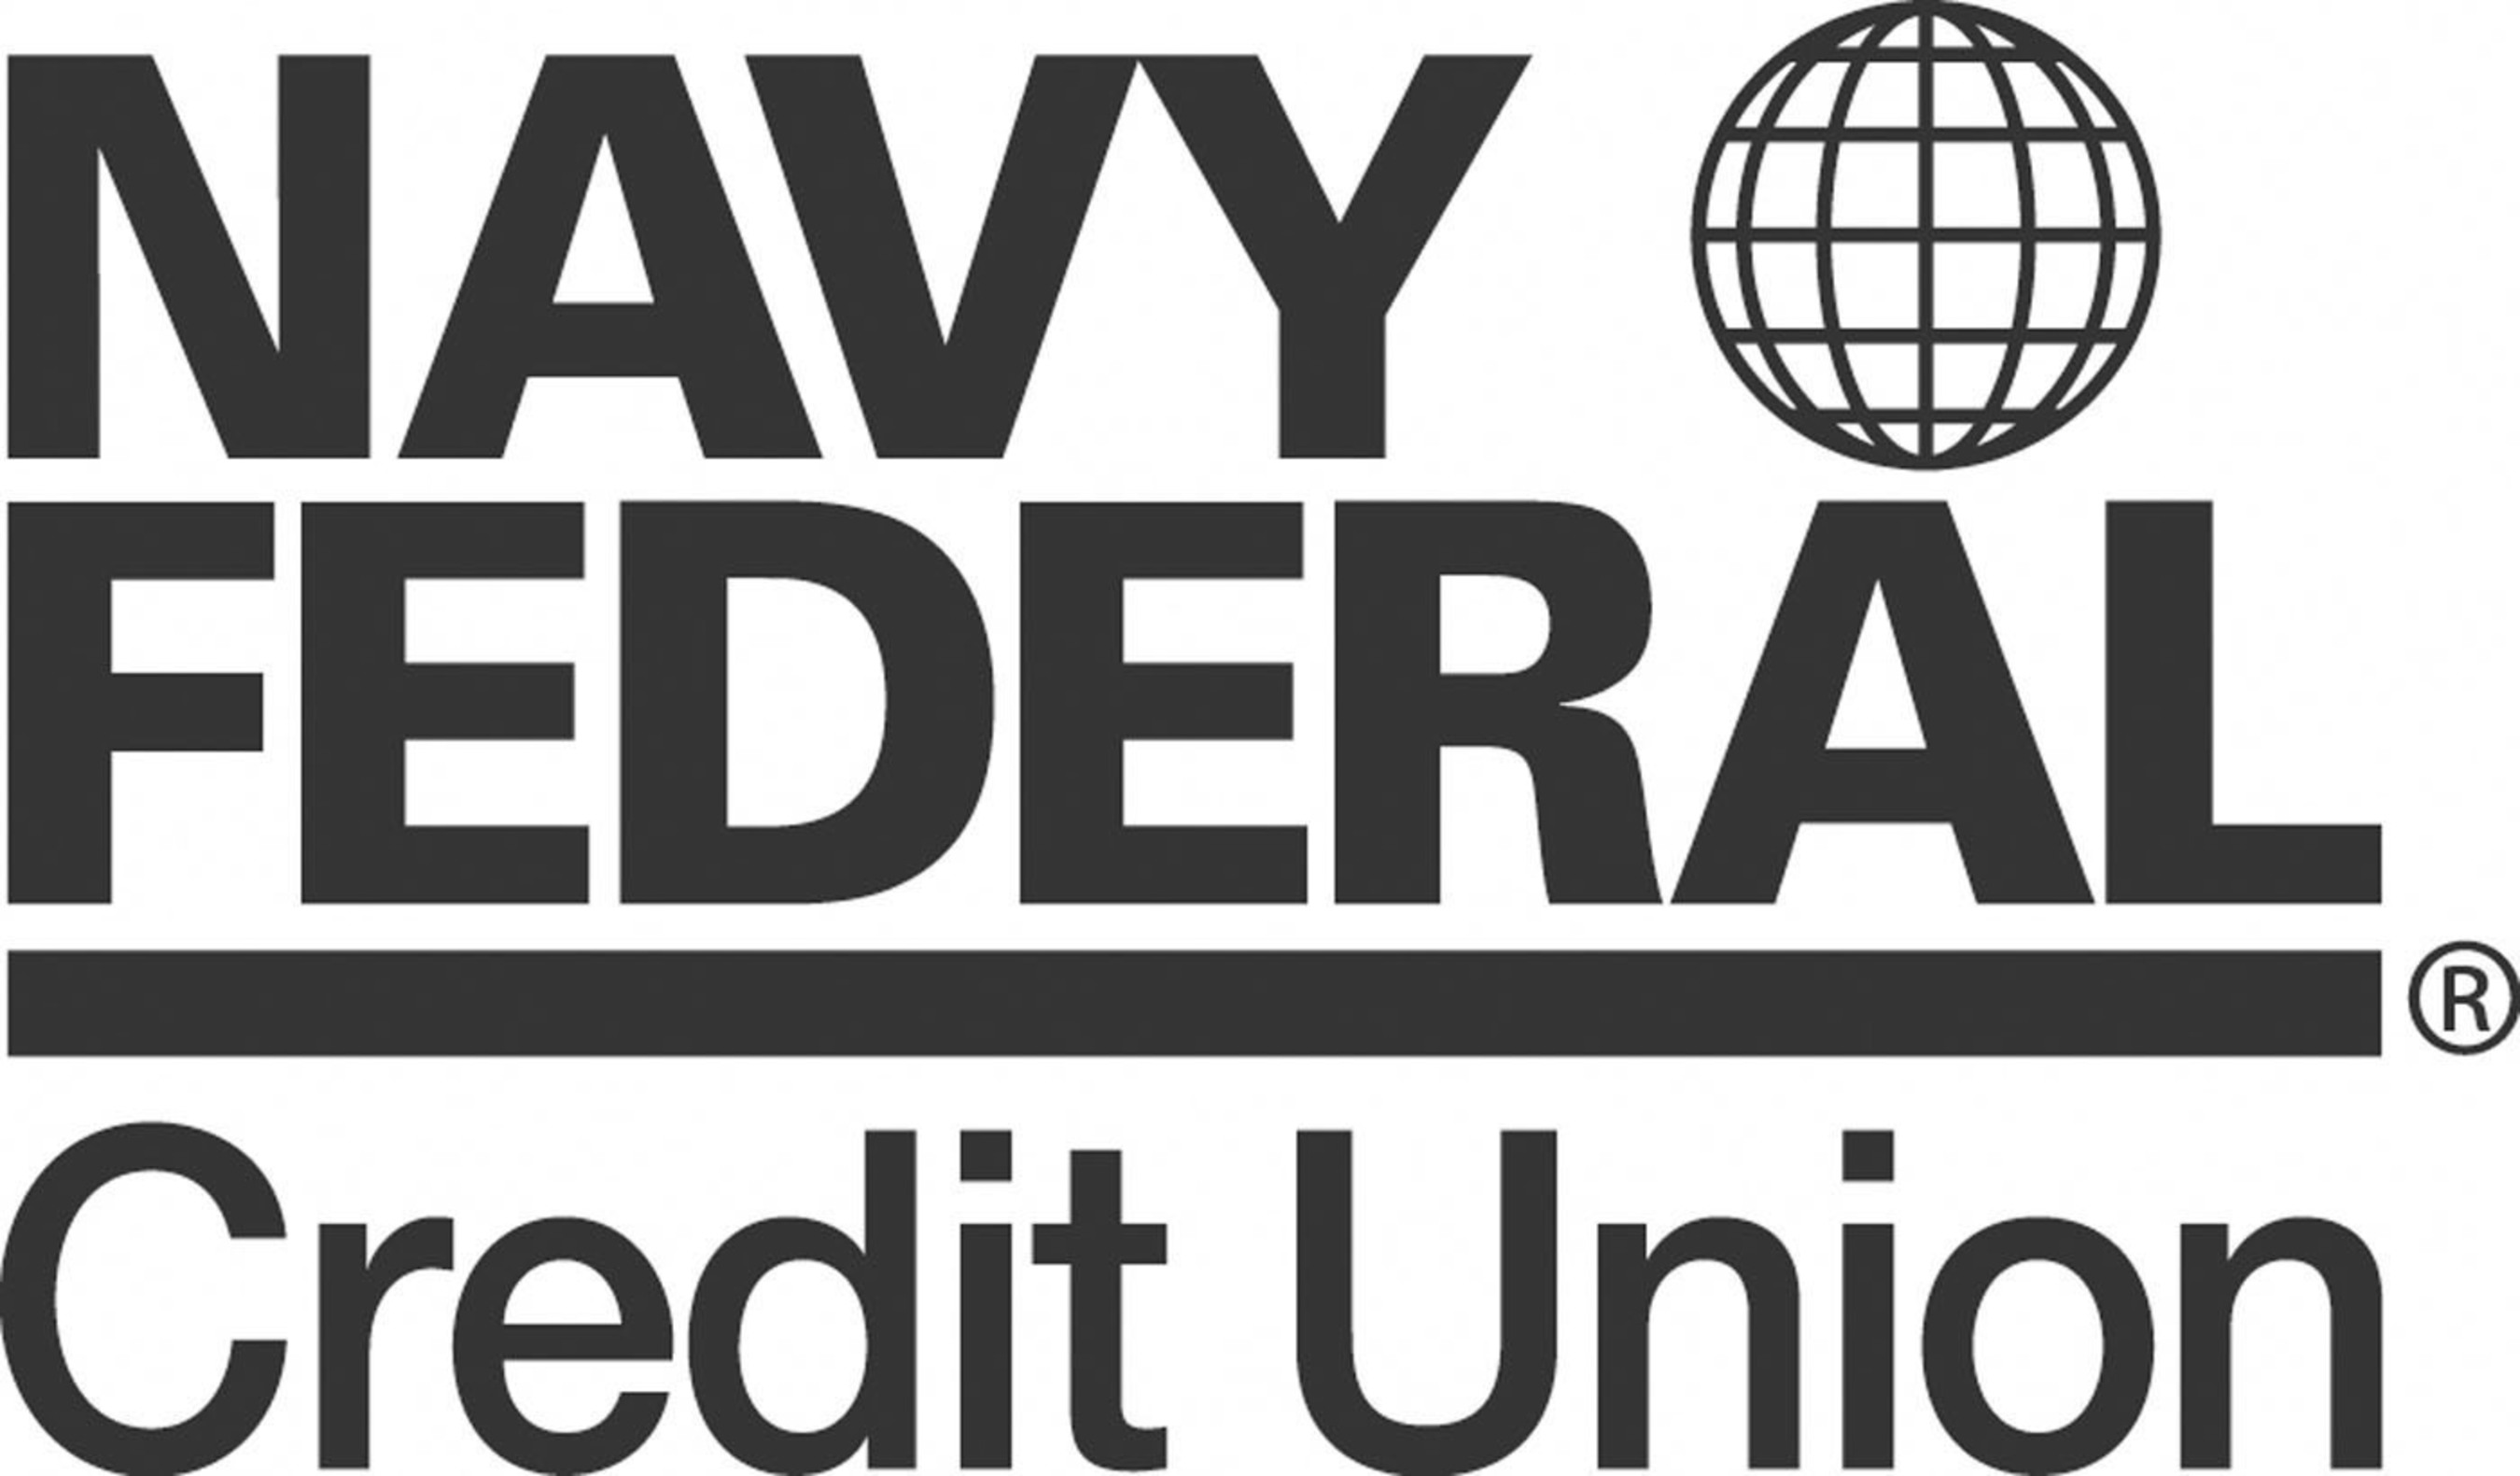 Navy Federal Adds Samsung Pay To Its Mobile Payment Options.